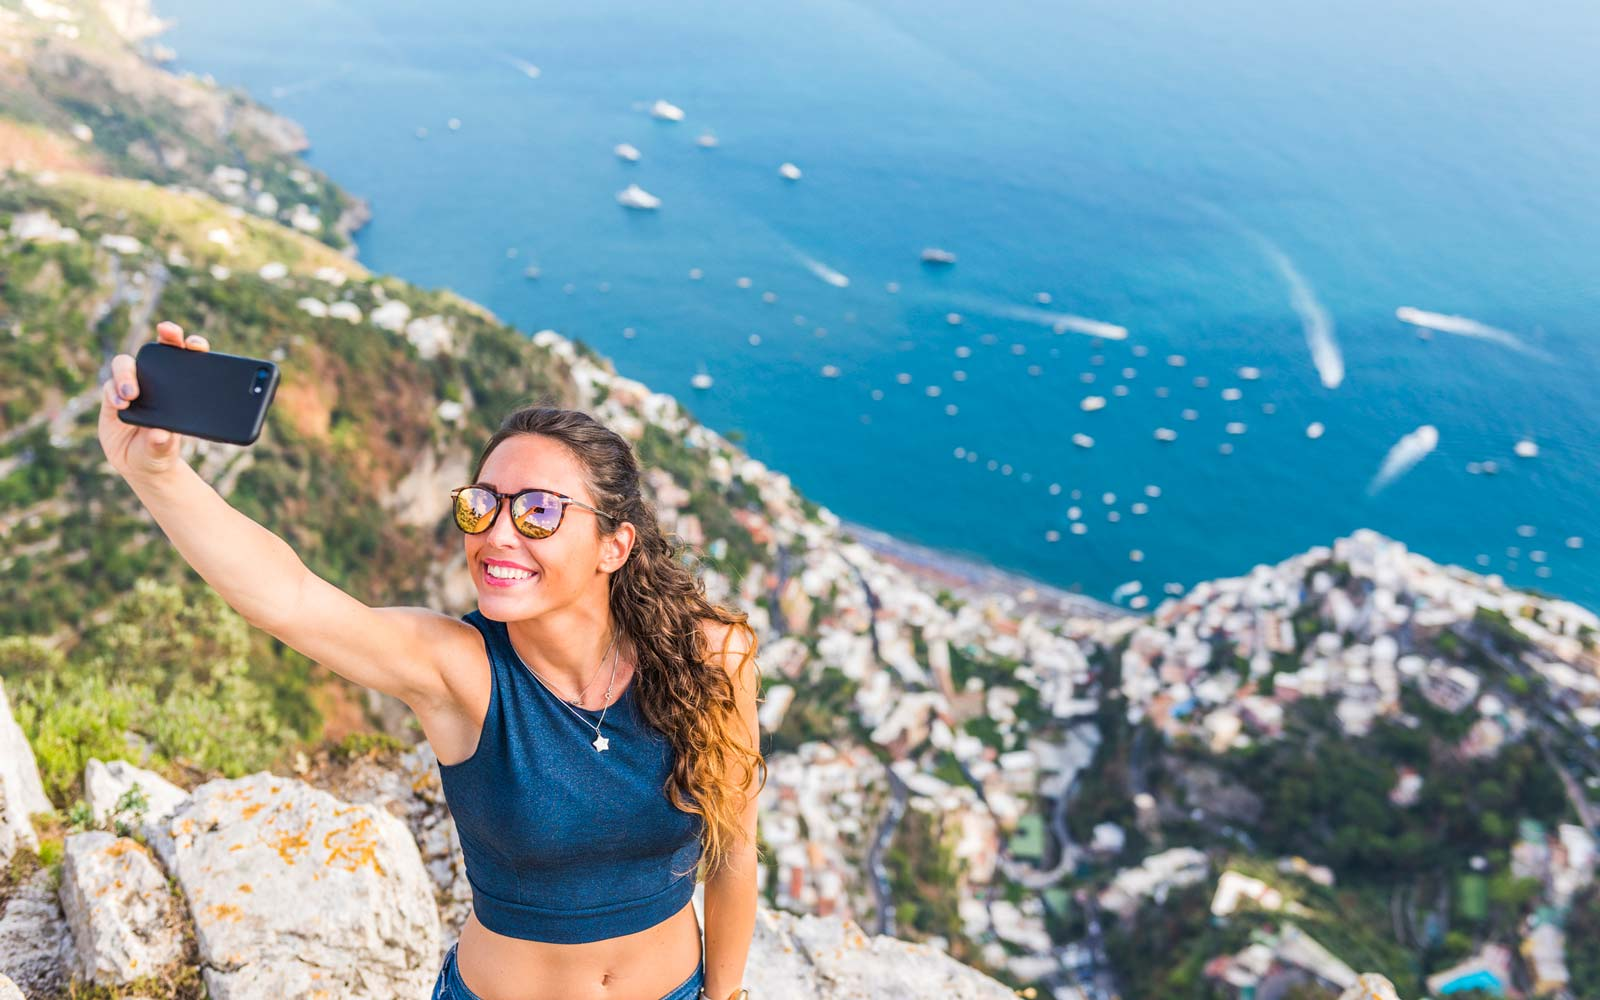 A young woman is taking a selfie. Positano village in the background